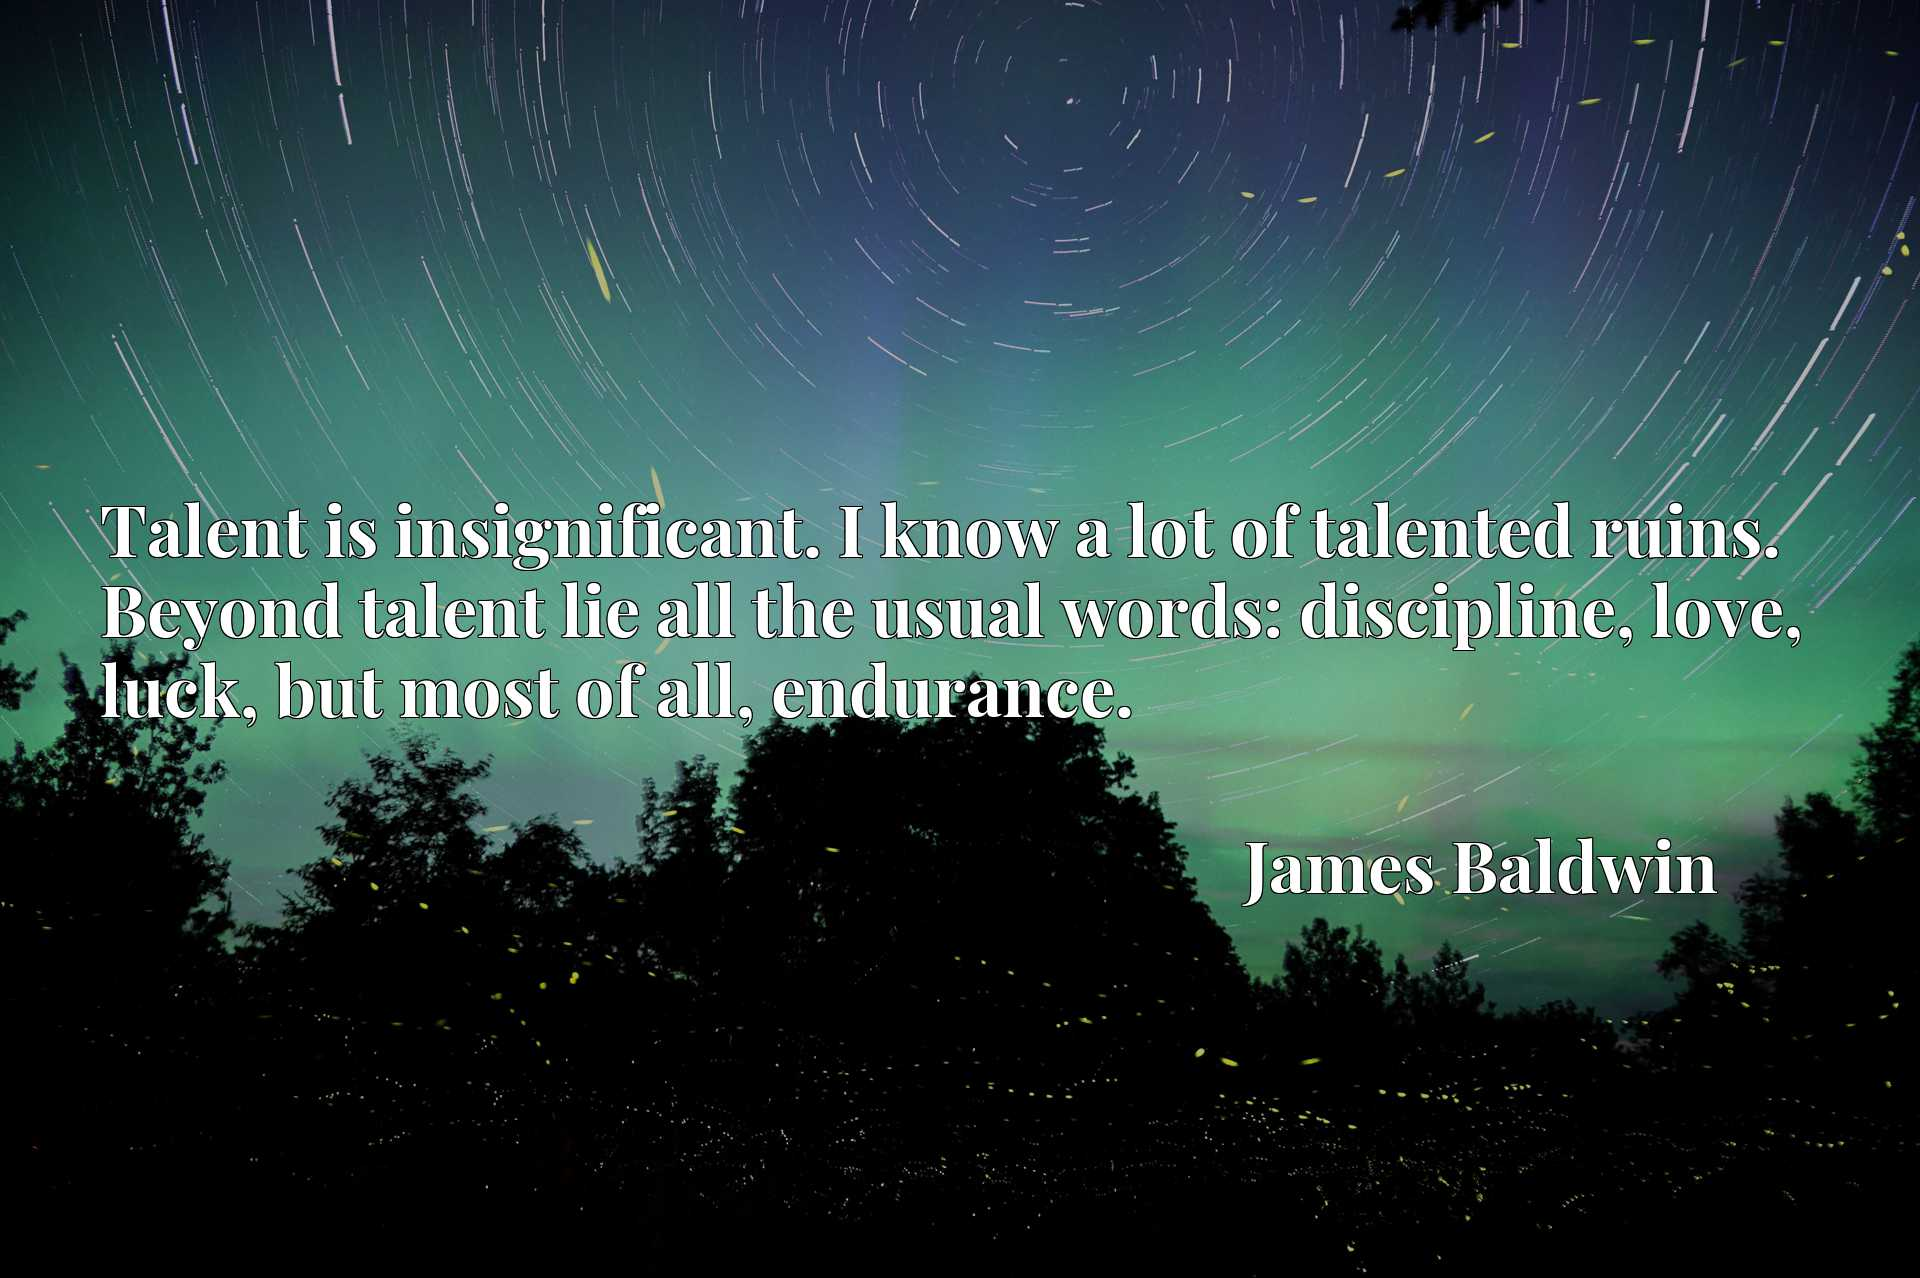 Talent is insignificant. I know a lot of talented ruins. Beyond talent lie all the usual words: discipline, love, luck, but most of all, endurance.